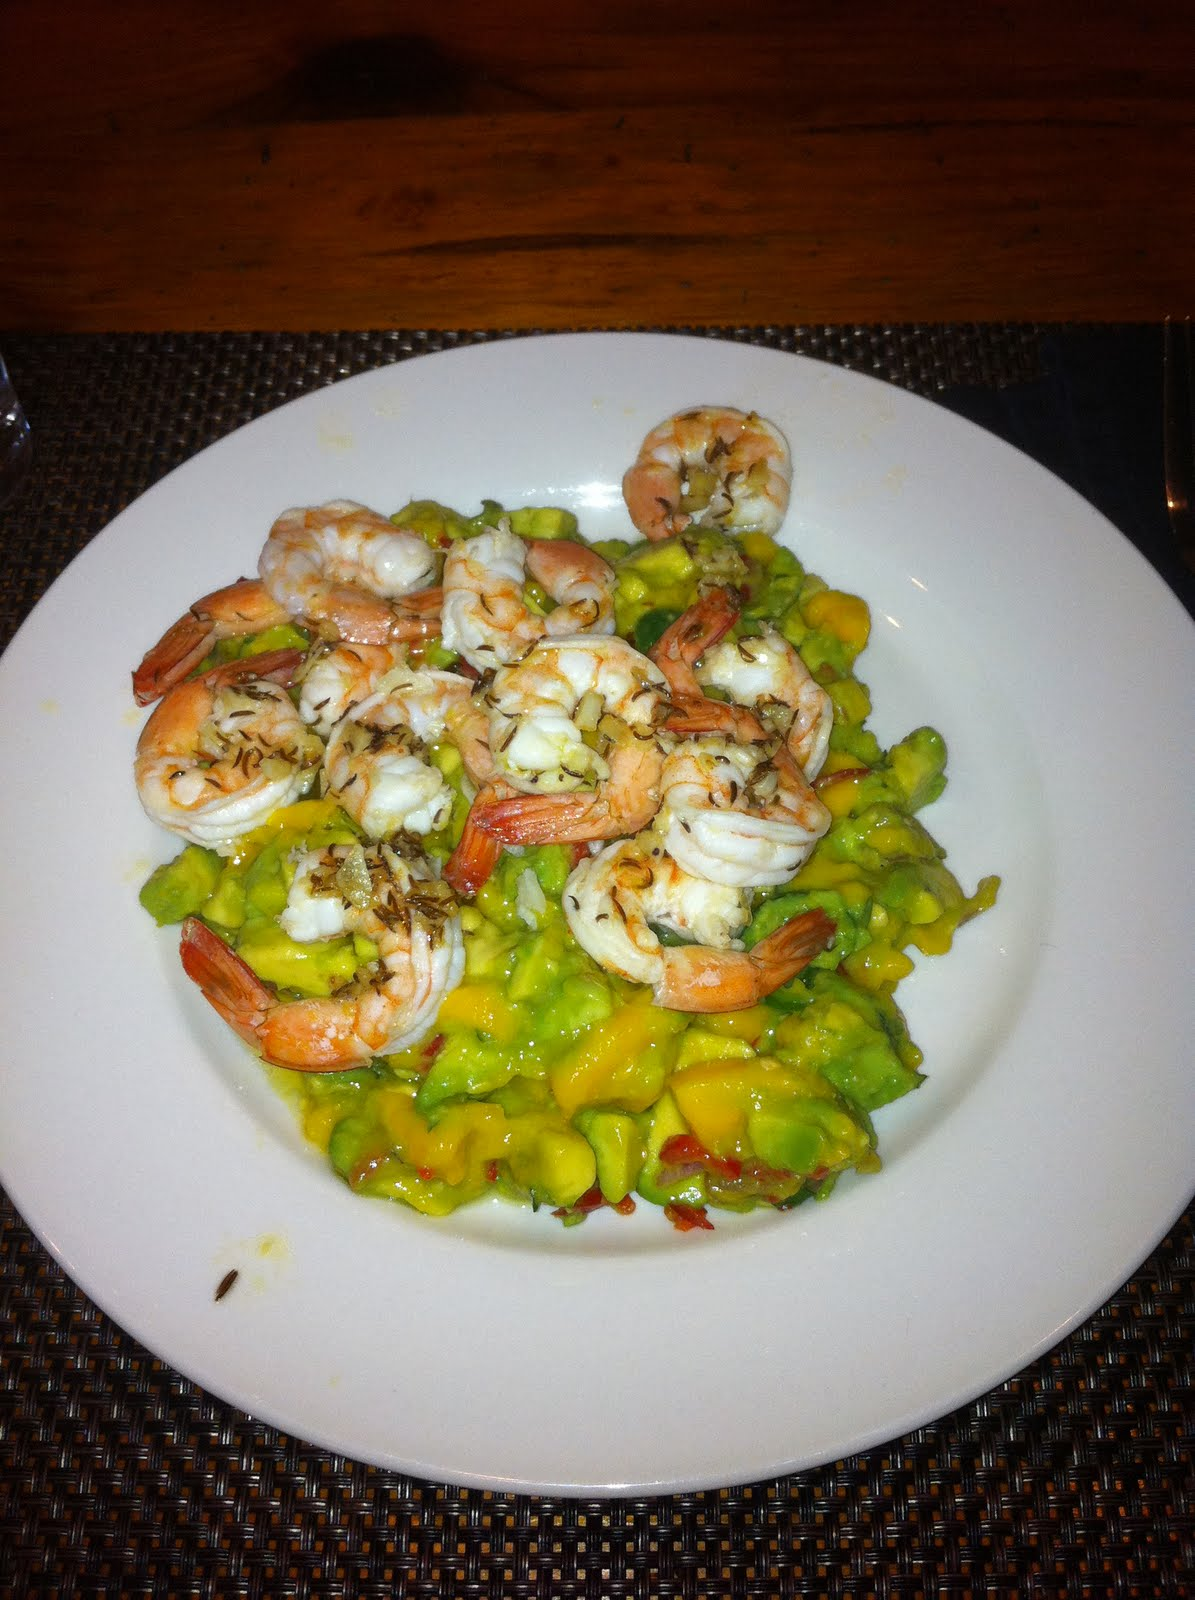 Today's new recipe was Mexican Seafood Sauté with Avocado Mango Salsa ...